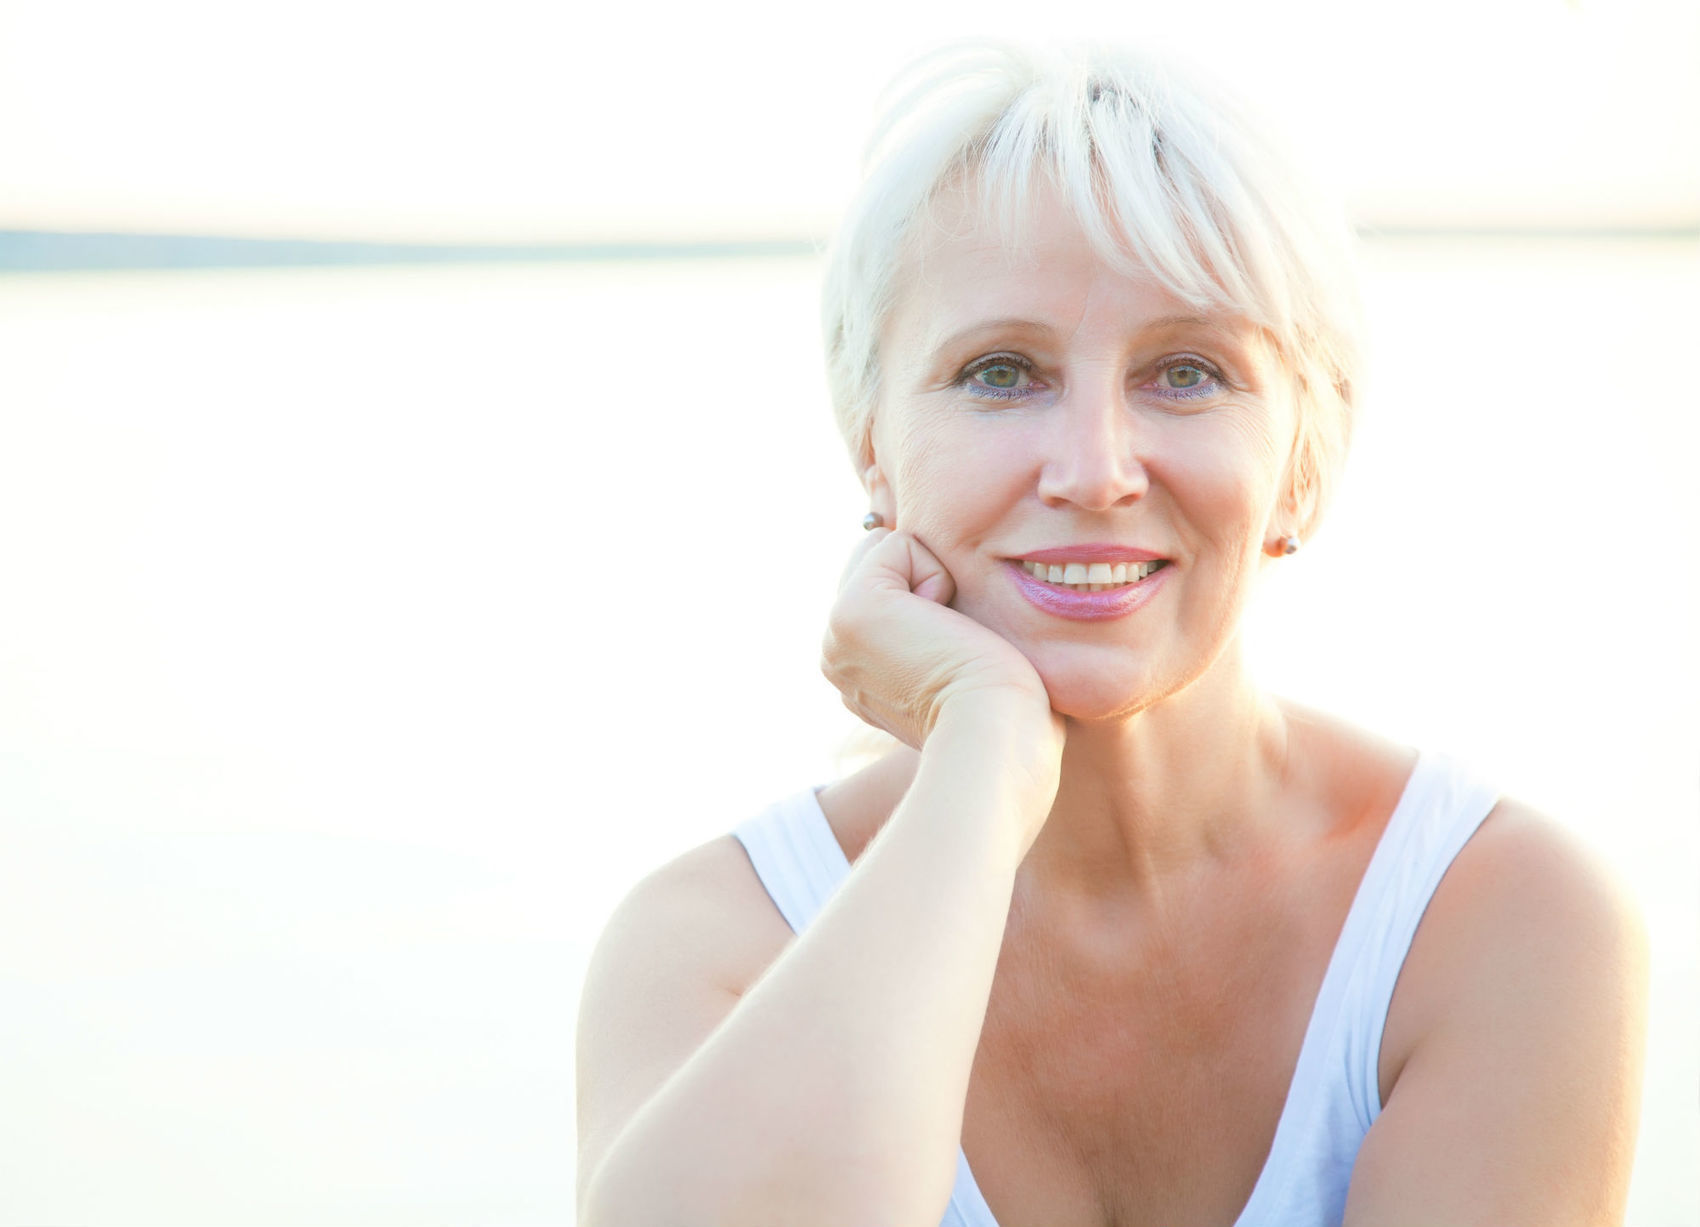 hilton head mature women personals Married women looking for men in hilton head island, south carolina thousands of married women up and down the country are starving for attention and women in hilton head island, south carolina are no different.